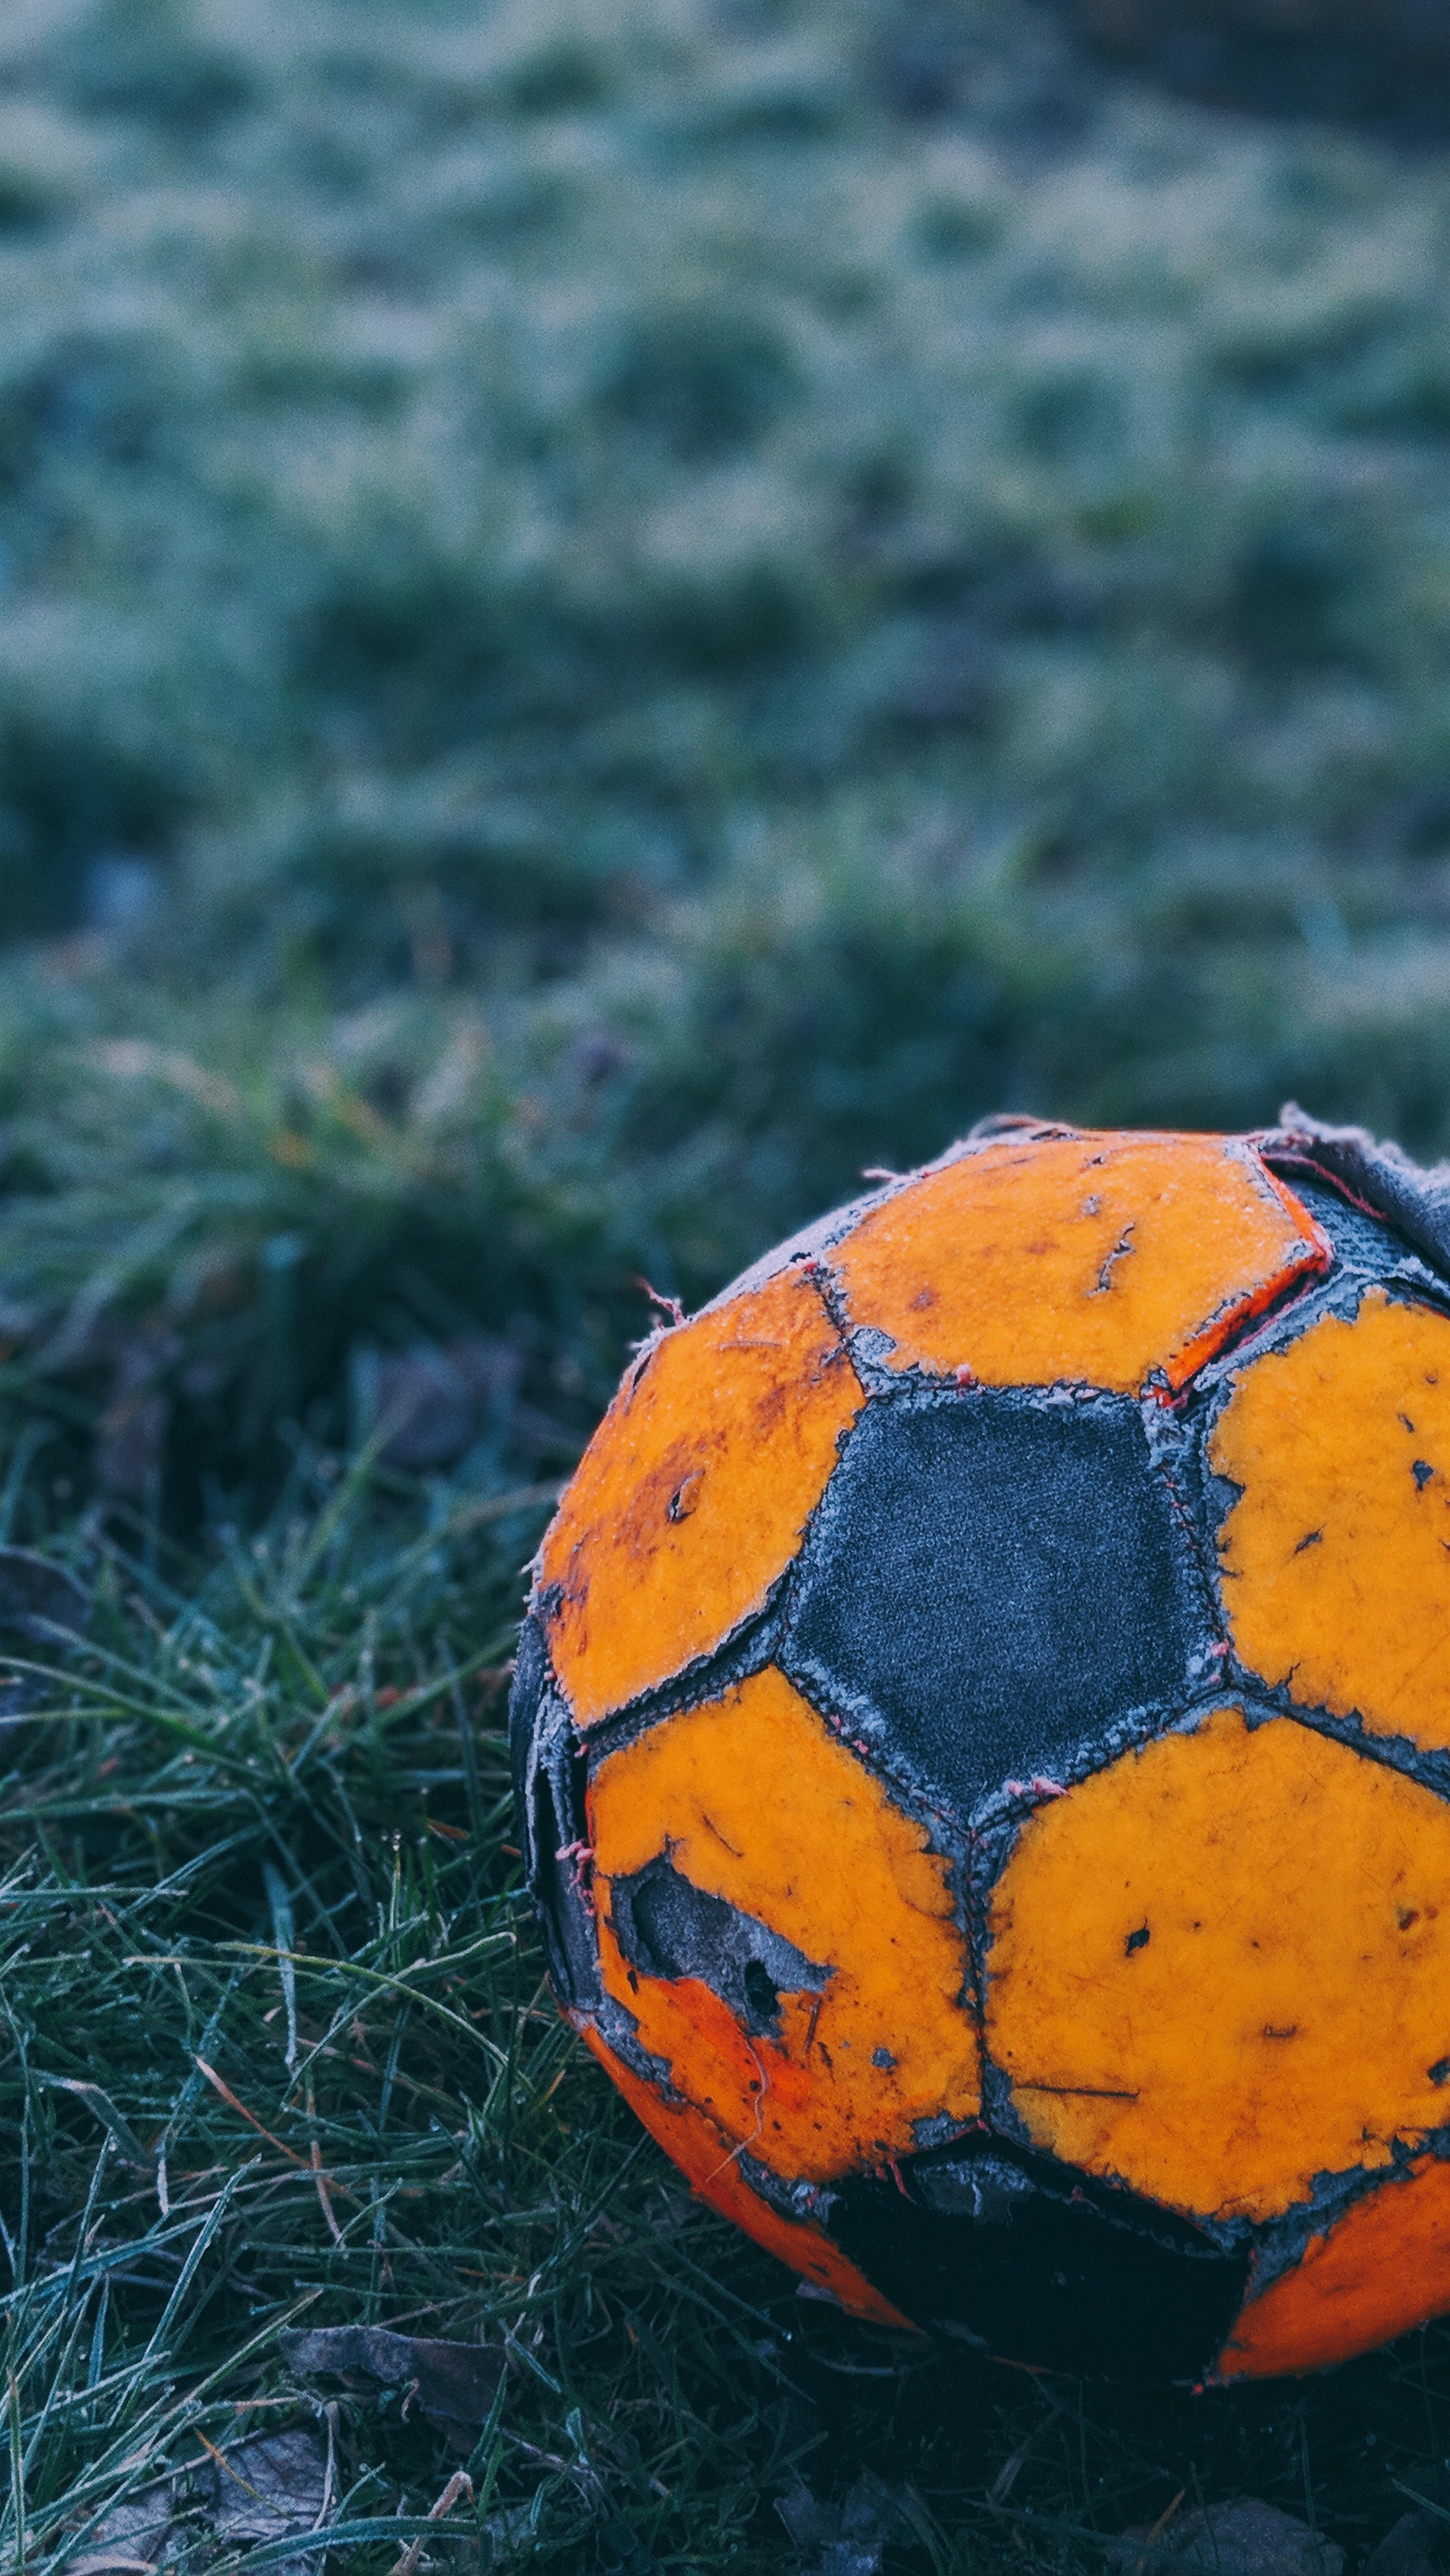 orange and black soccer ball on the field